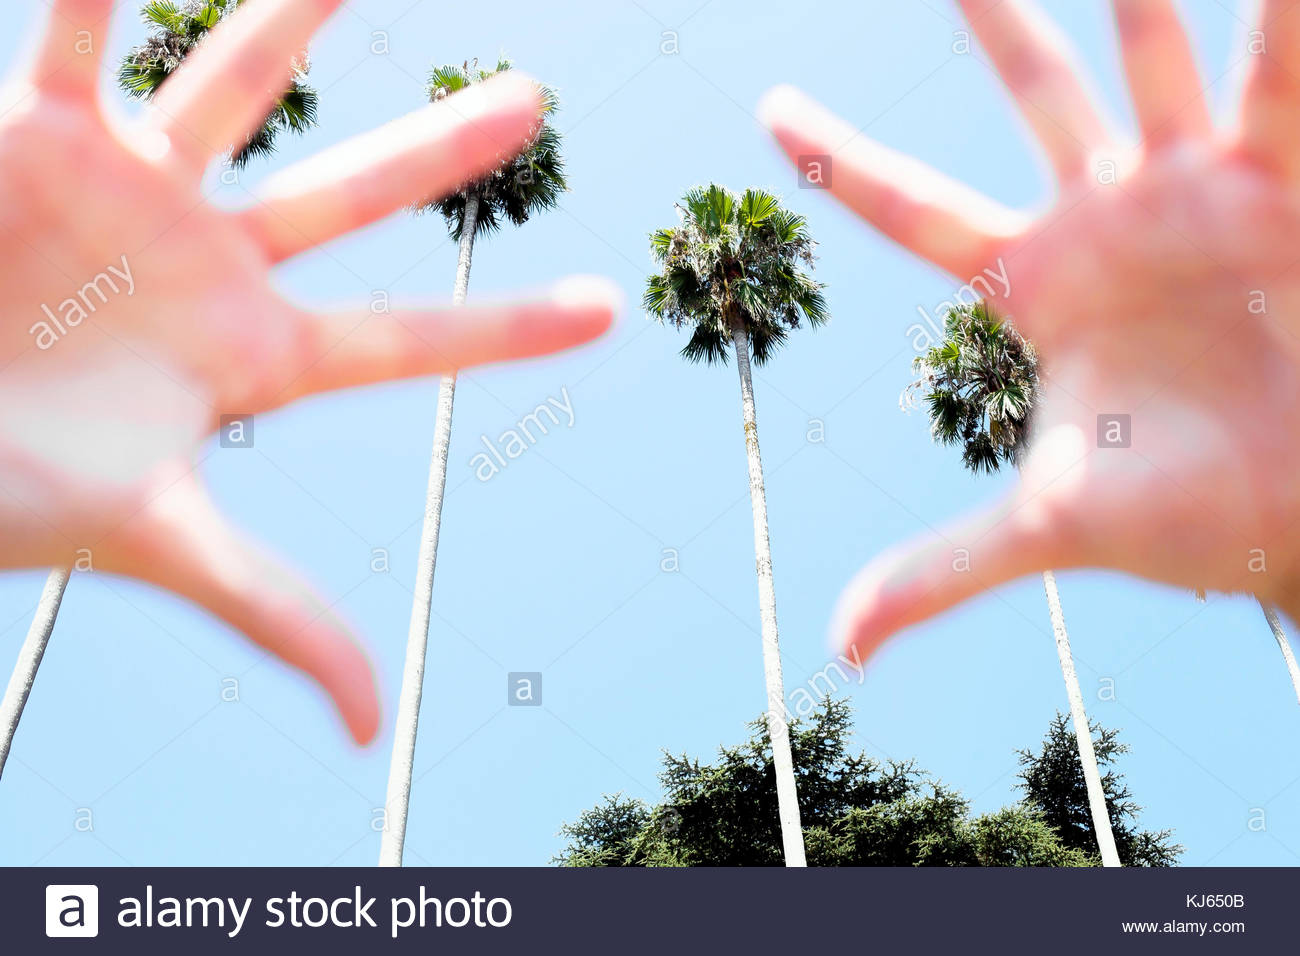 Hands and palmtrees - Stock Image